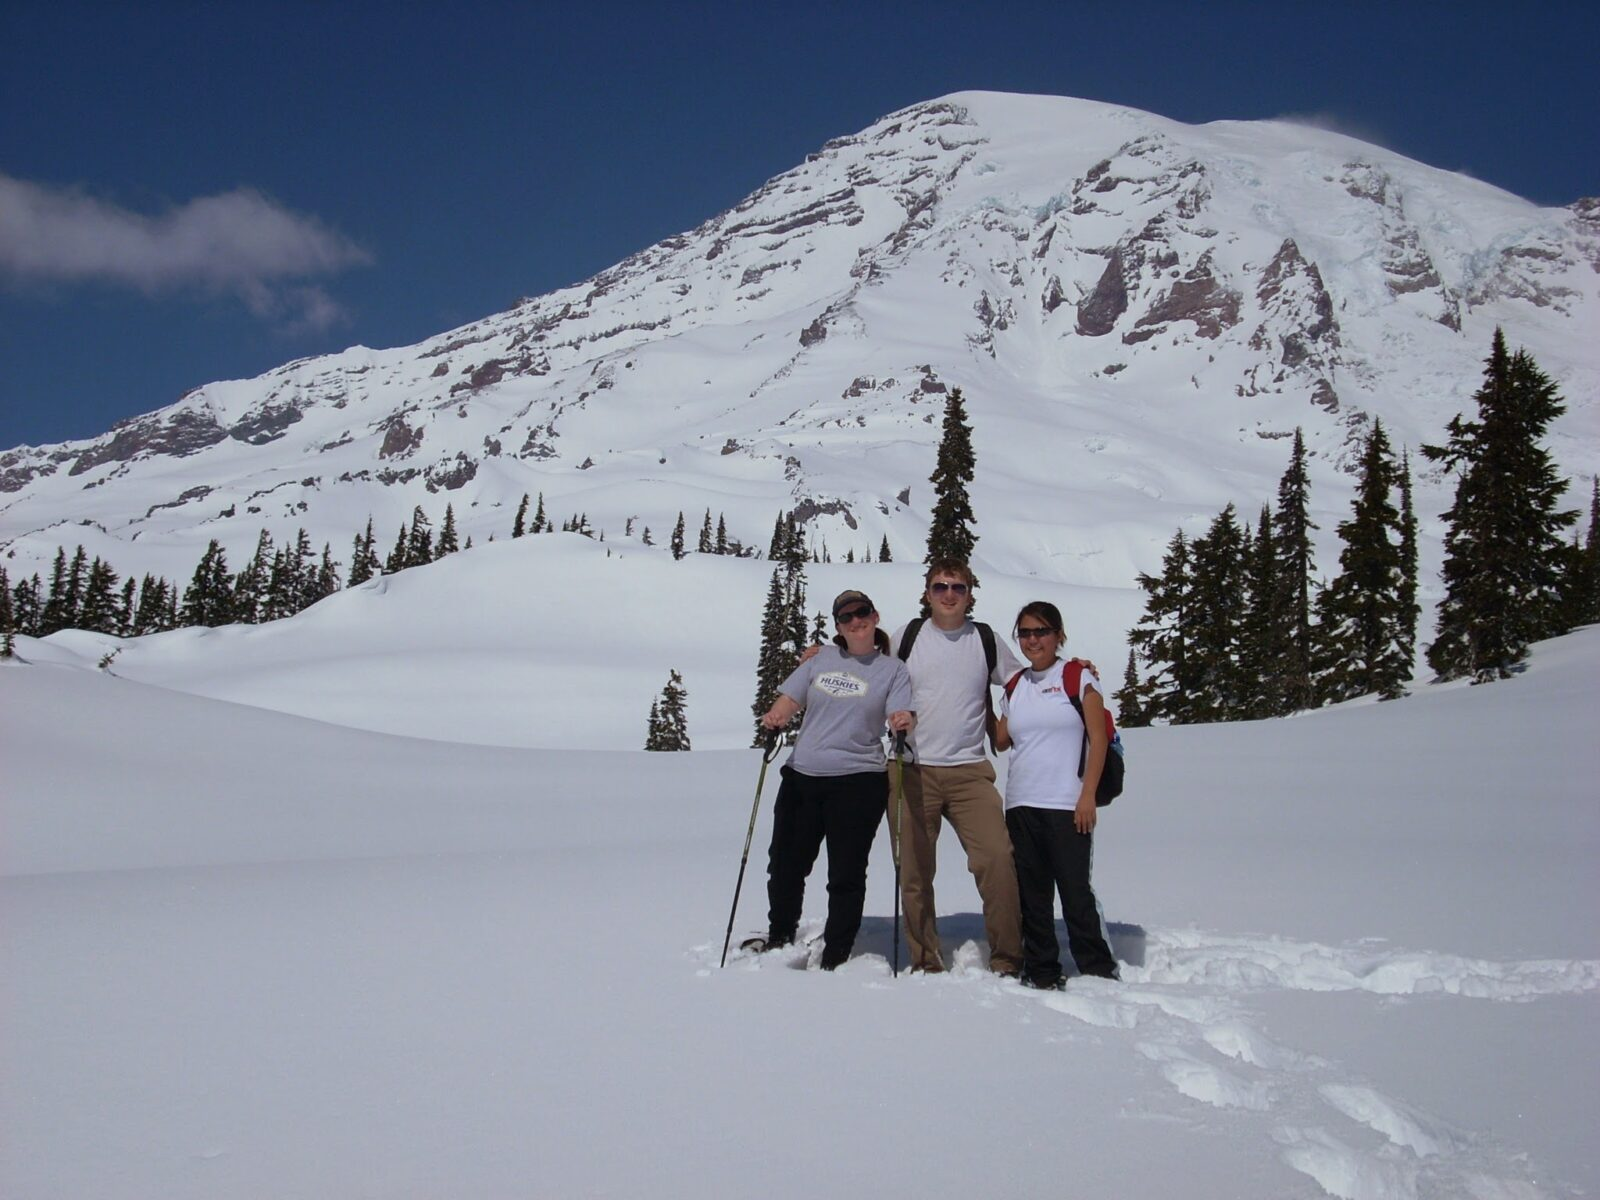 Three hikers pose for the camera in snow in front of Mt Rainier. They are wearing snowshoes, t shirts and sunglasses. Evergreen trees are visible as well.